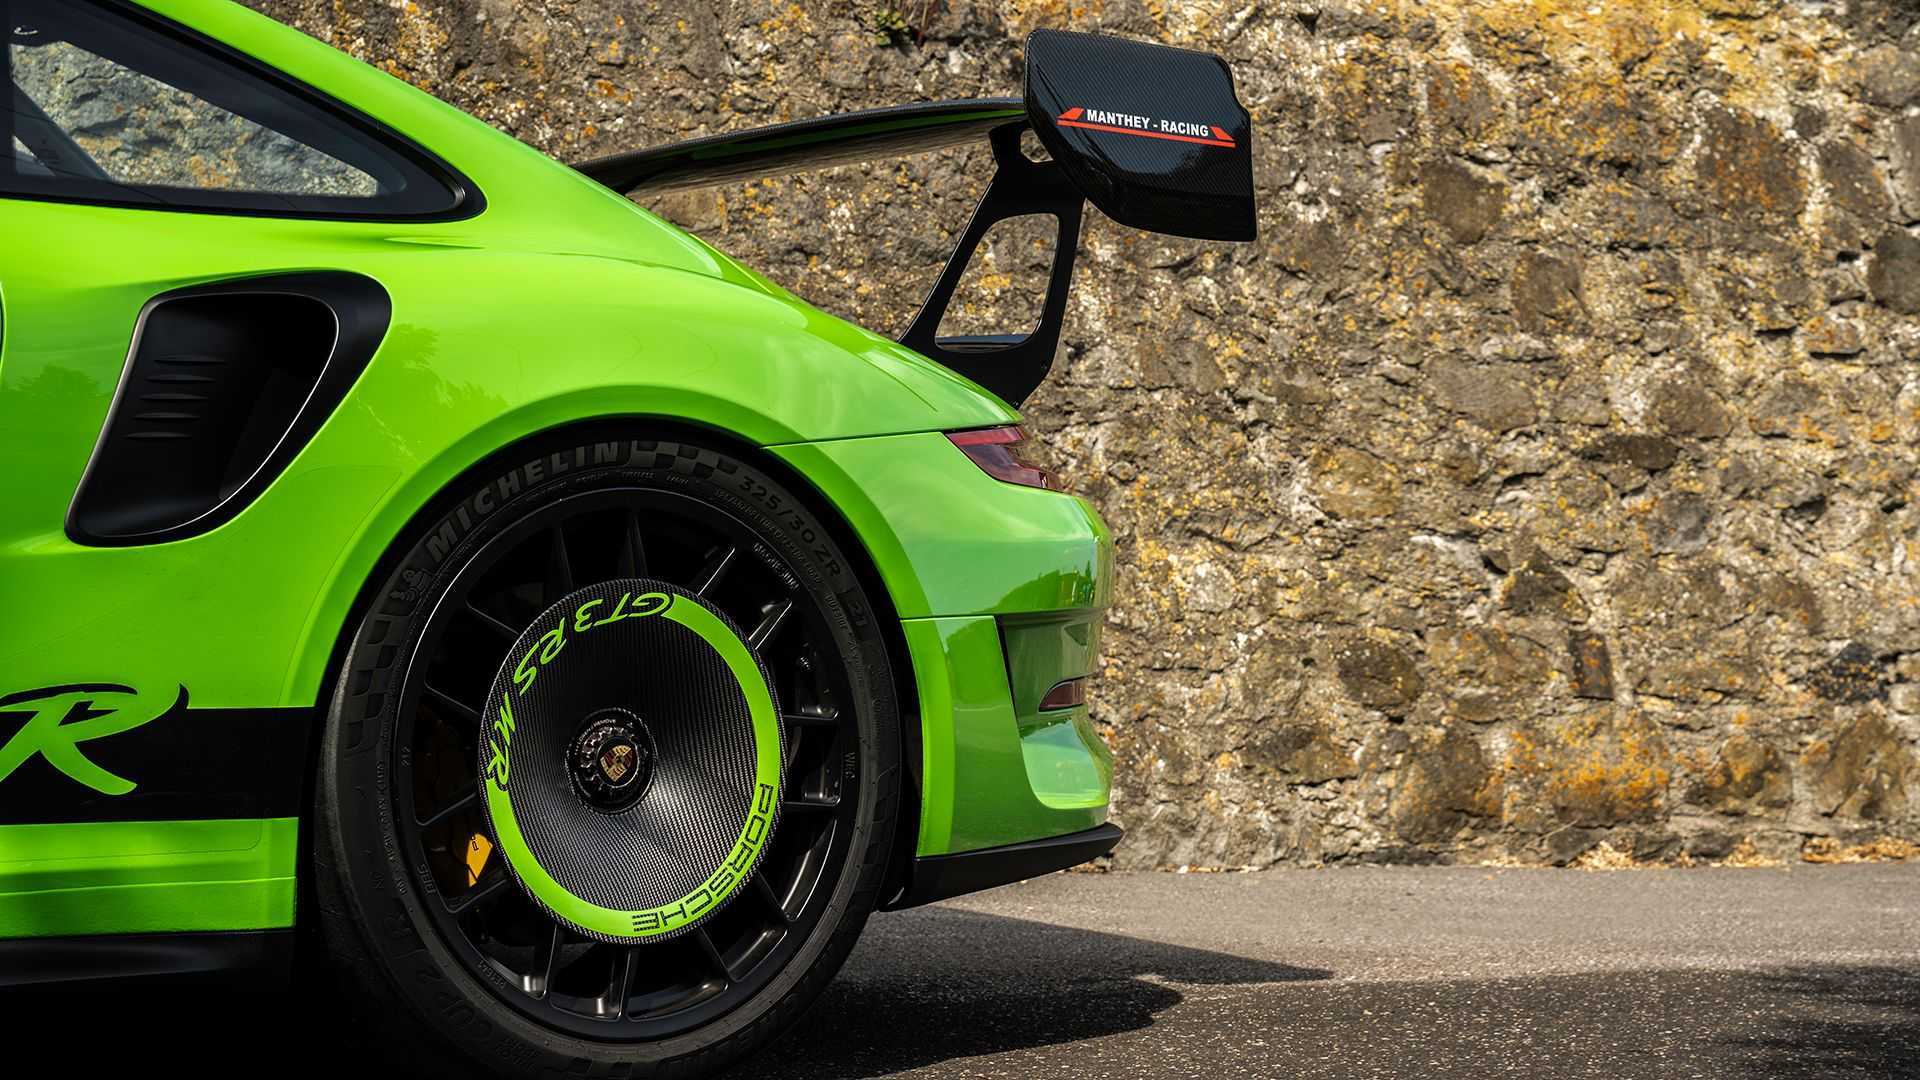 Porsche-911-GT3-RS-by-Manthey-Racing-10